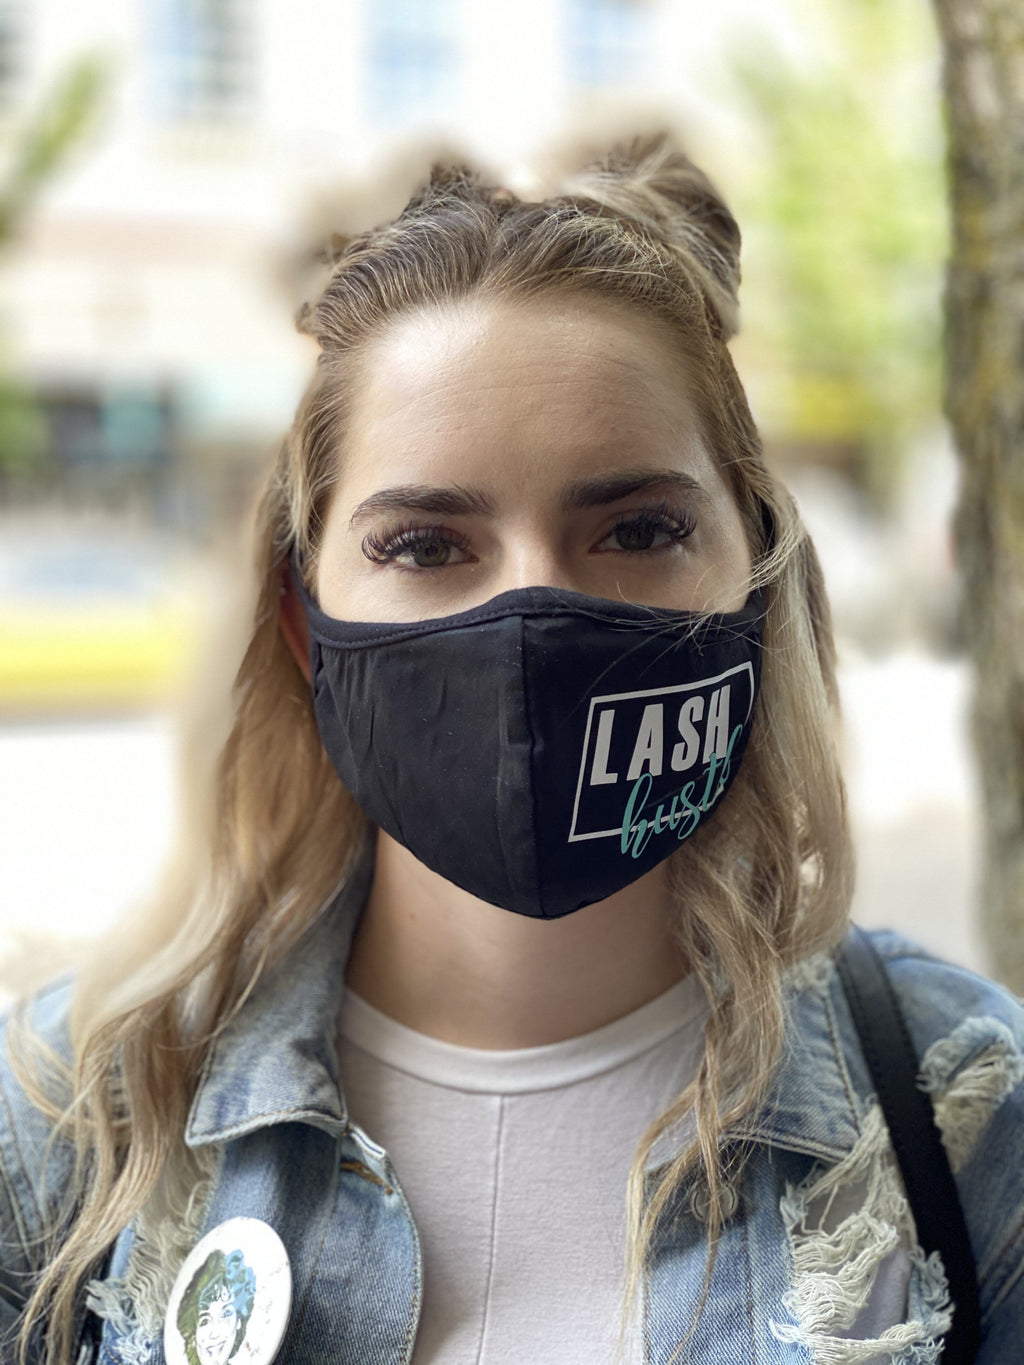 Mask - Lash Hustle